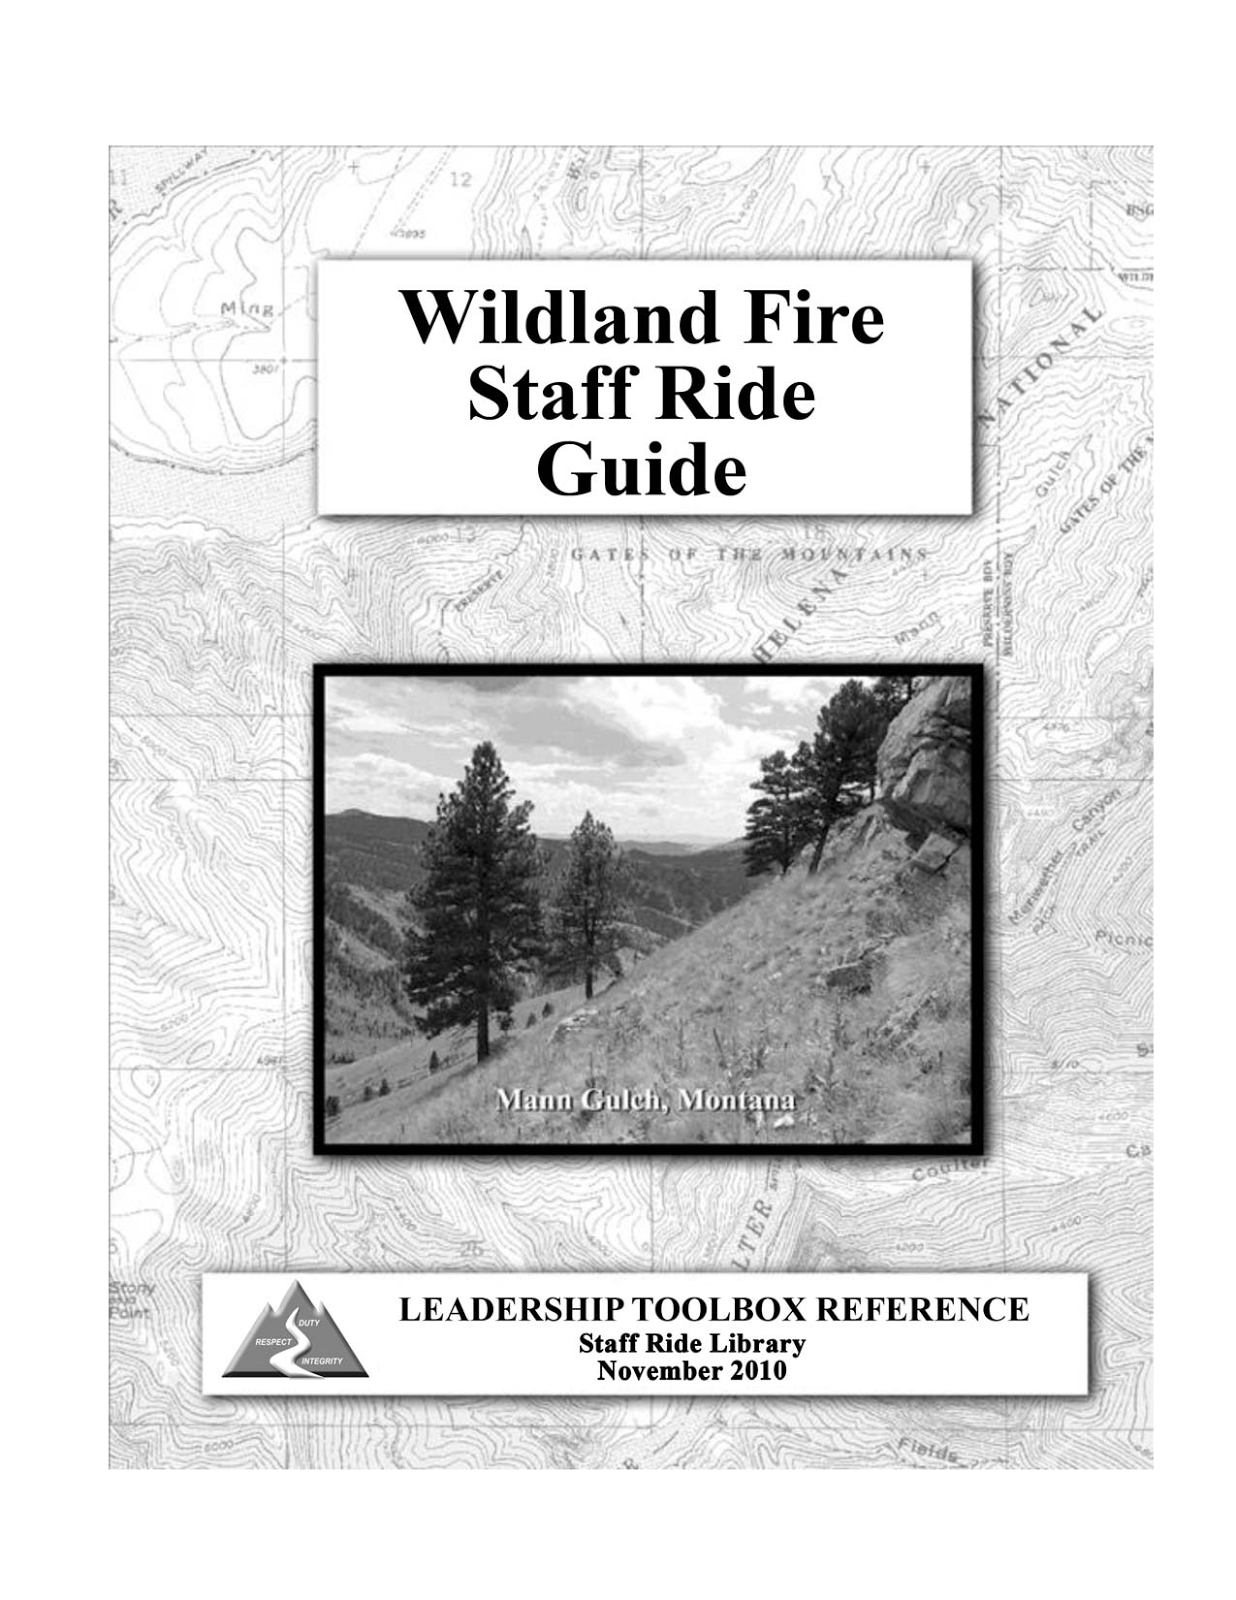 Wildland Fire Staff Ride Guide cover